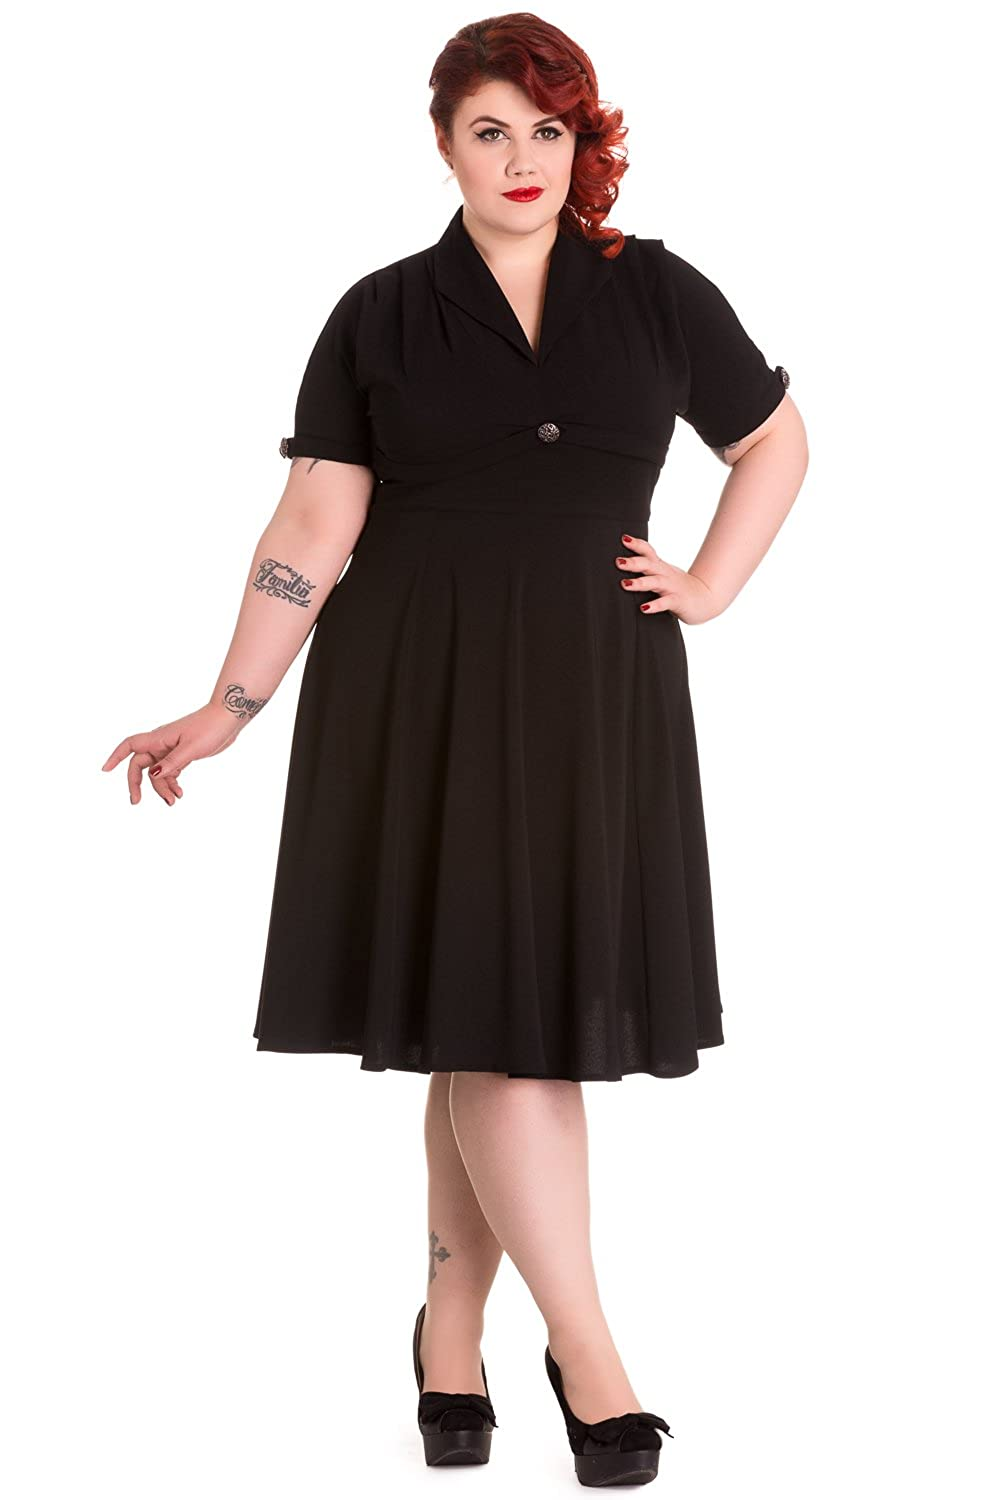 Plus Size Vintage Dresses, Plus Size Retro Dresses Hell Bunny Plus Size 60s Vintage Style Jocelyn Flare PartyDress $87.00 AT vintagedancer.com